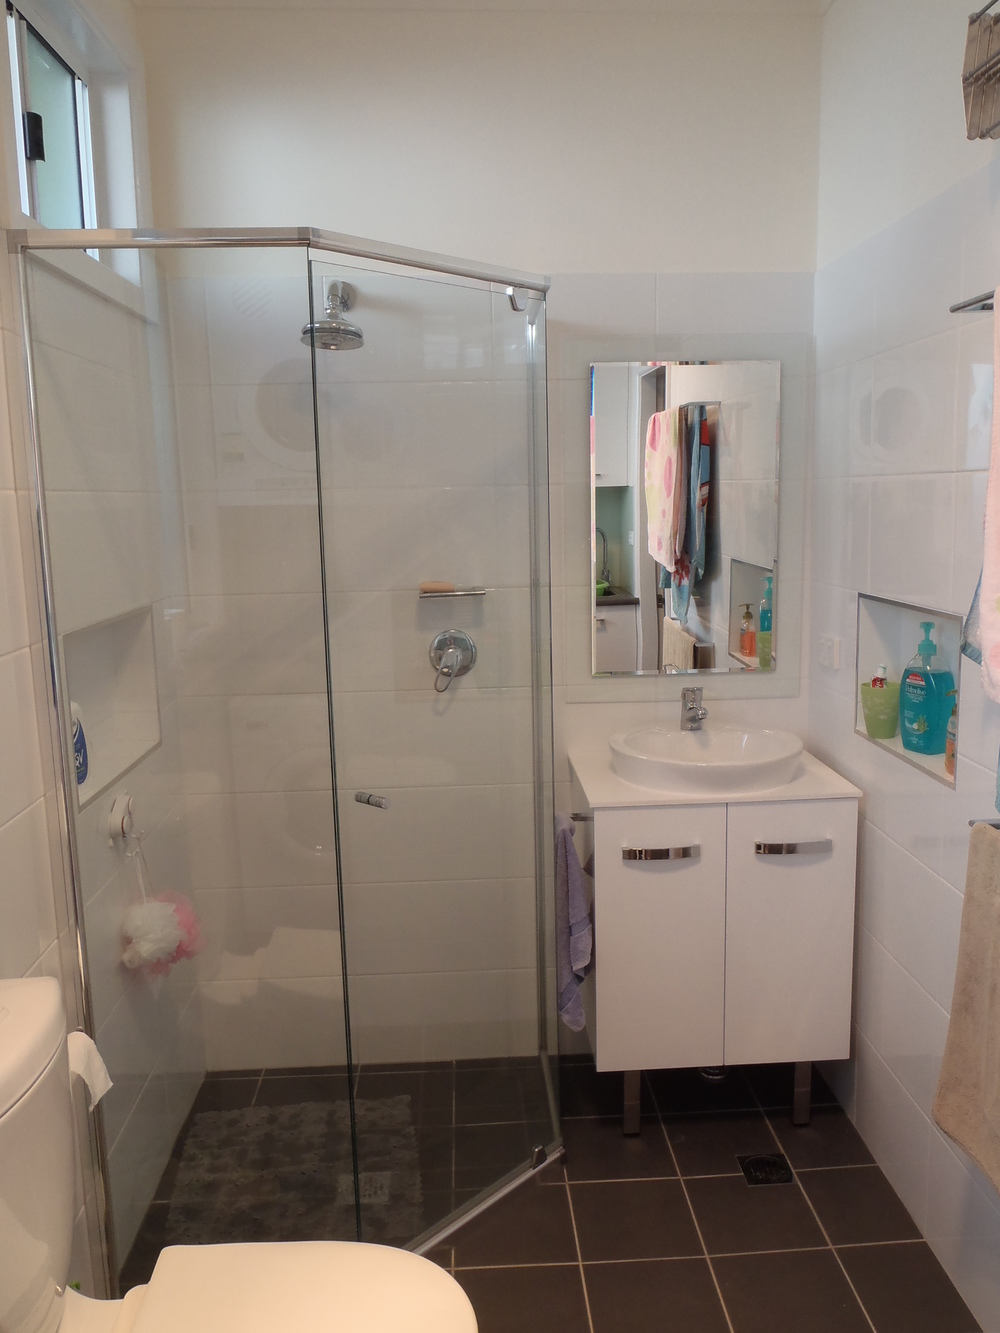 Bathroom Renovation - Geoff & Tricia, Como